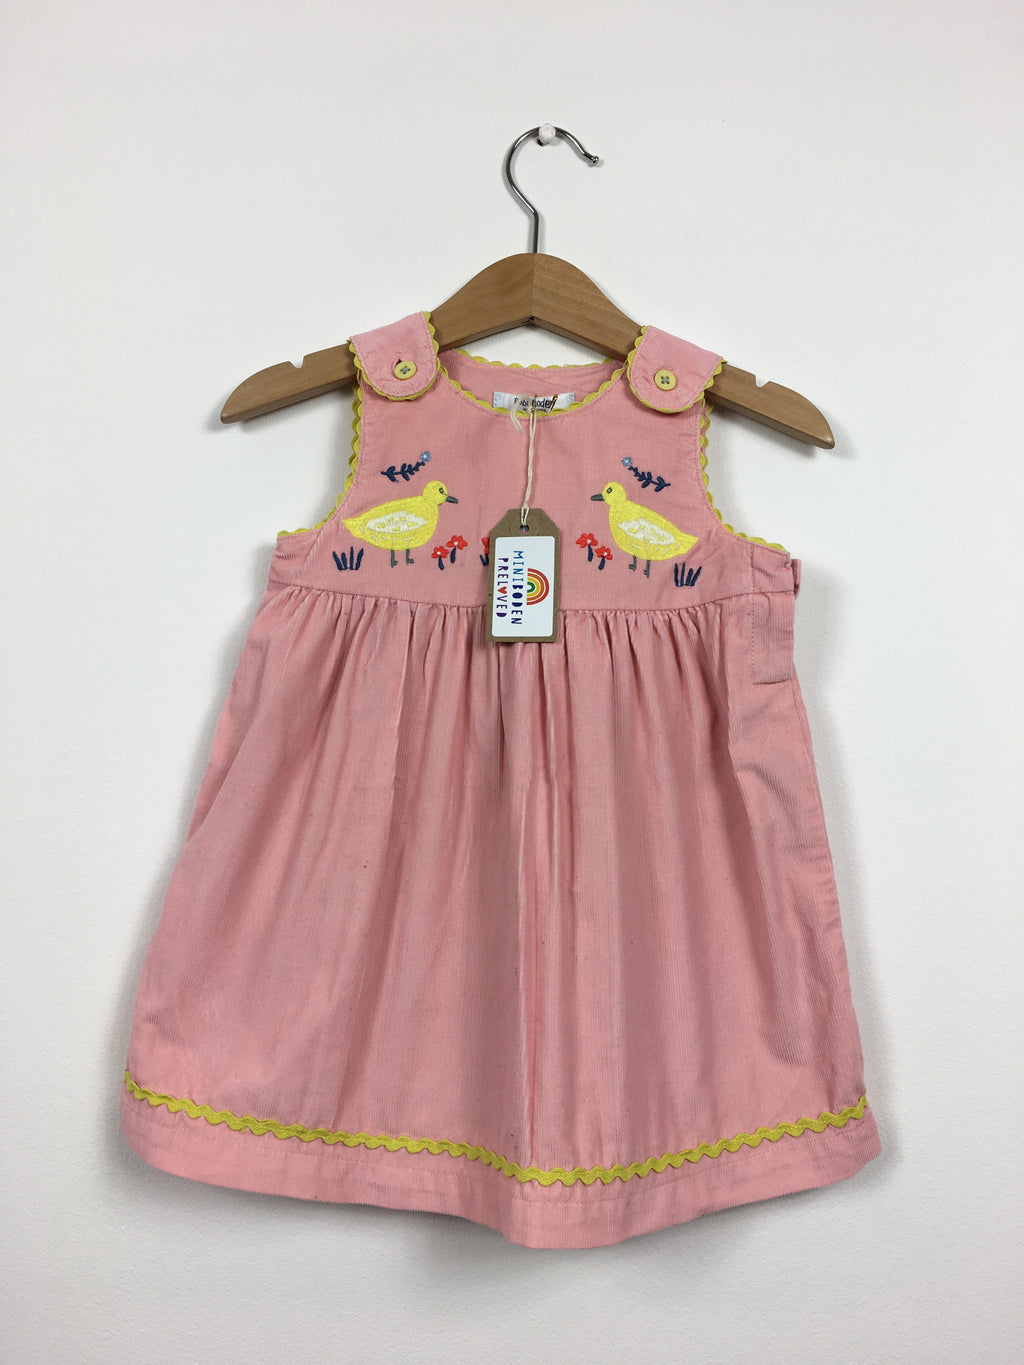 Beautiful Pink Cord Embroidered Chicks Dress (Age 6-12 Months)